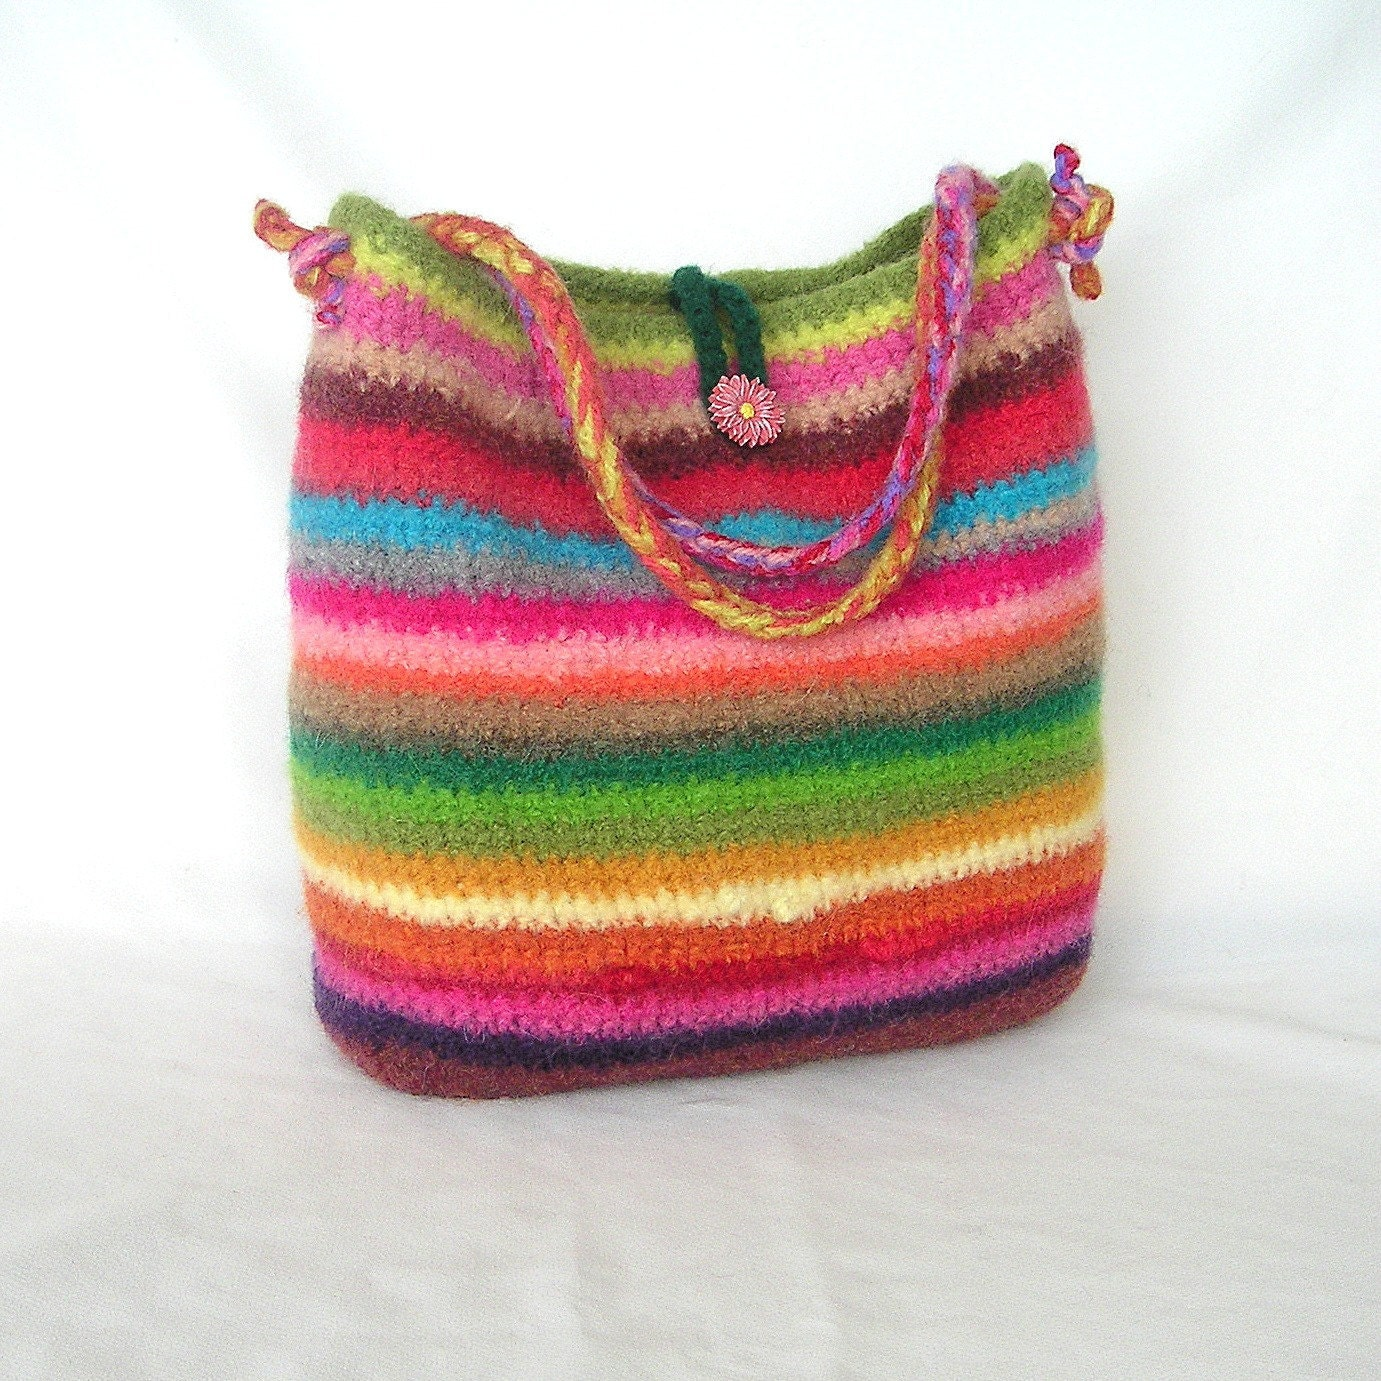 Crochet Designs For Bags : Rainbow Felted Bag Crochet Pattern by GraceKnittingPattern on Etsy